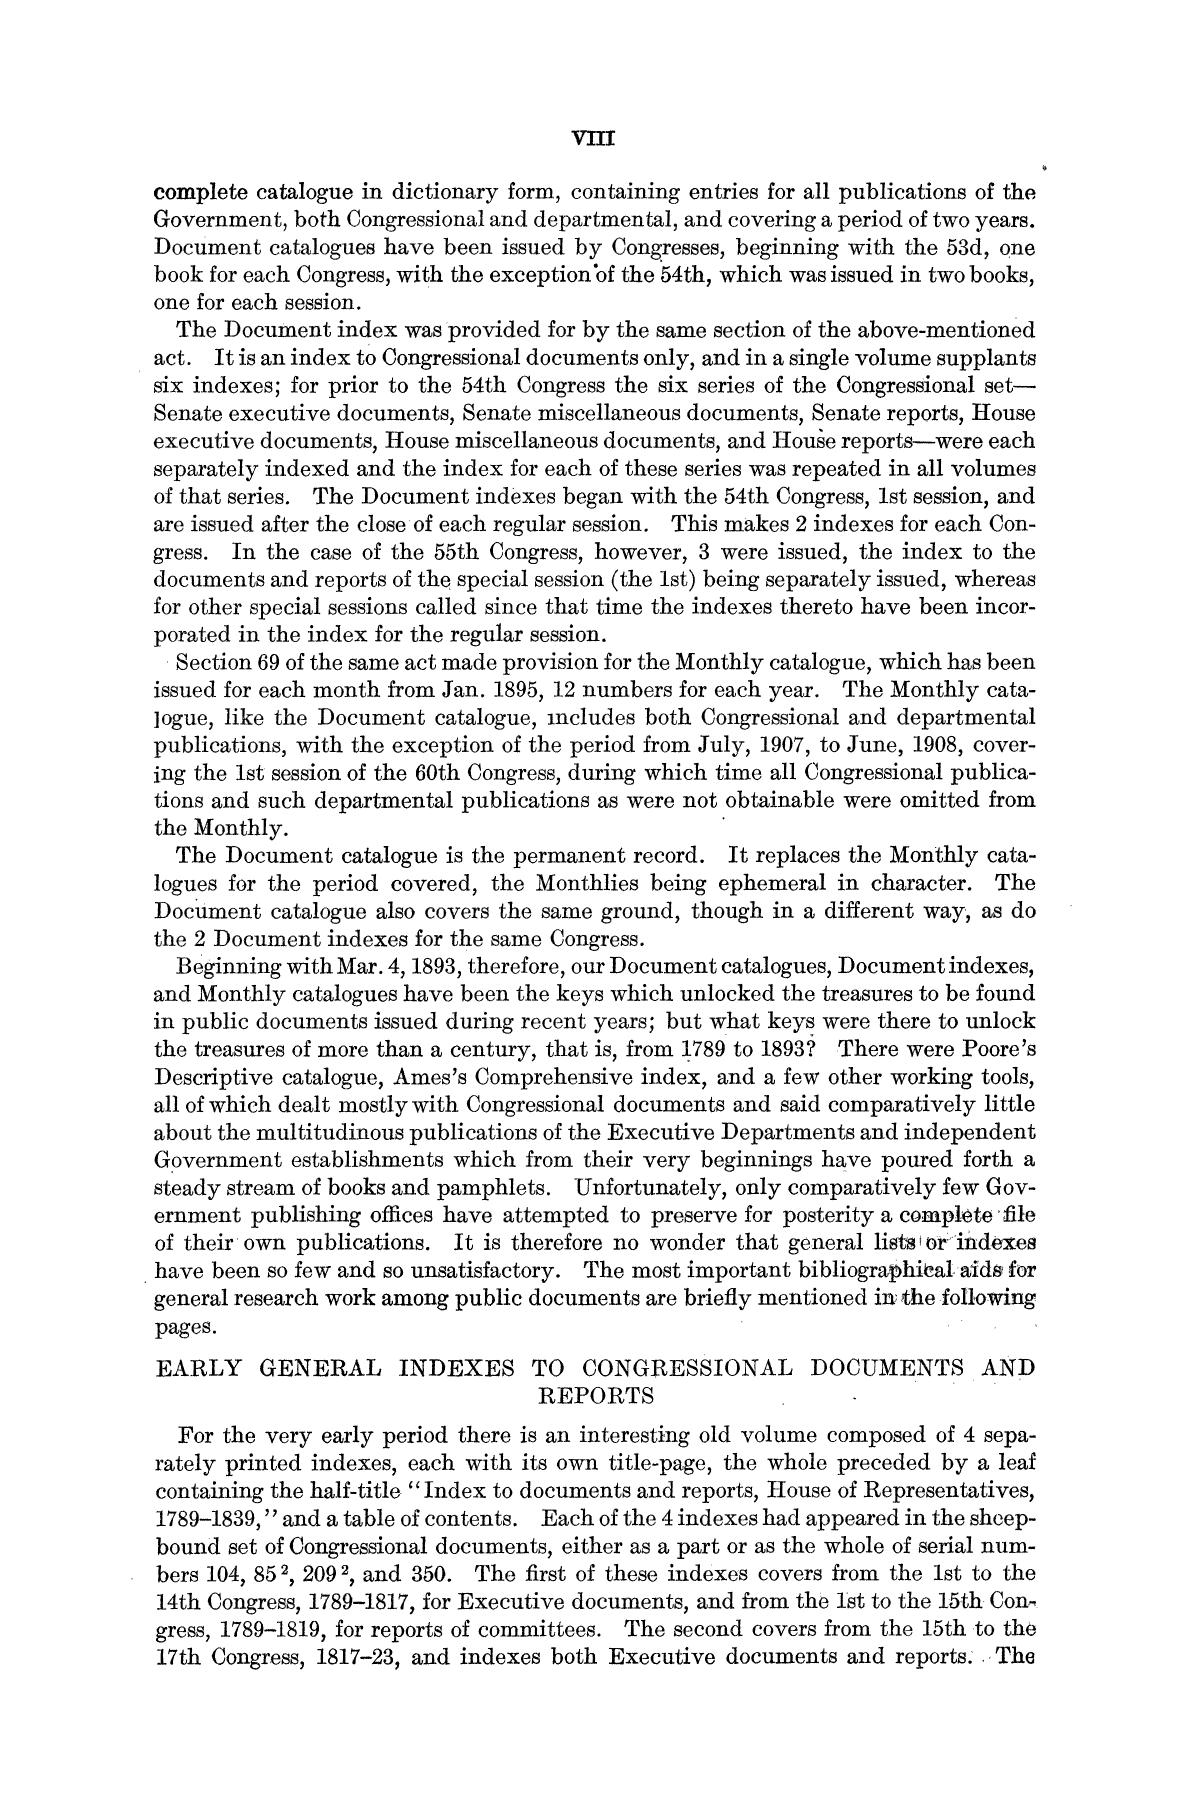 Checklist of United States Public Documents, 1789-1909, Third Edition Revised and Enlarged, Volume 1, Lists of Congressional and Departmental Publications                                                                                                      VIII